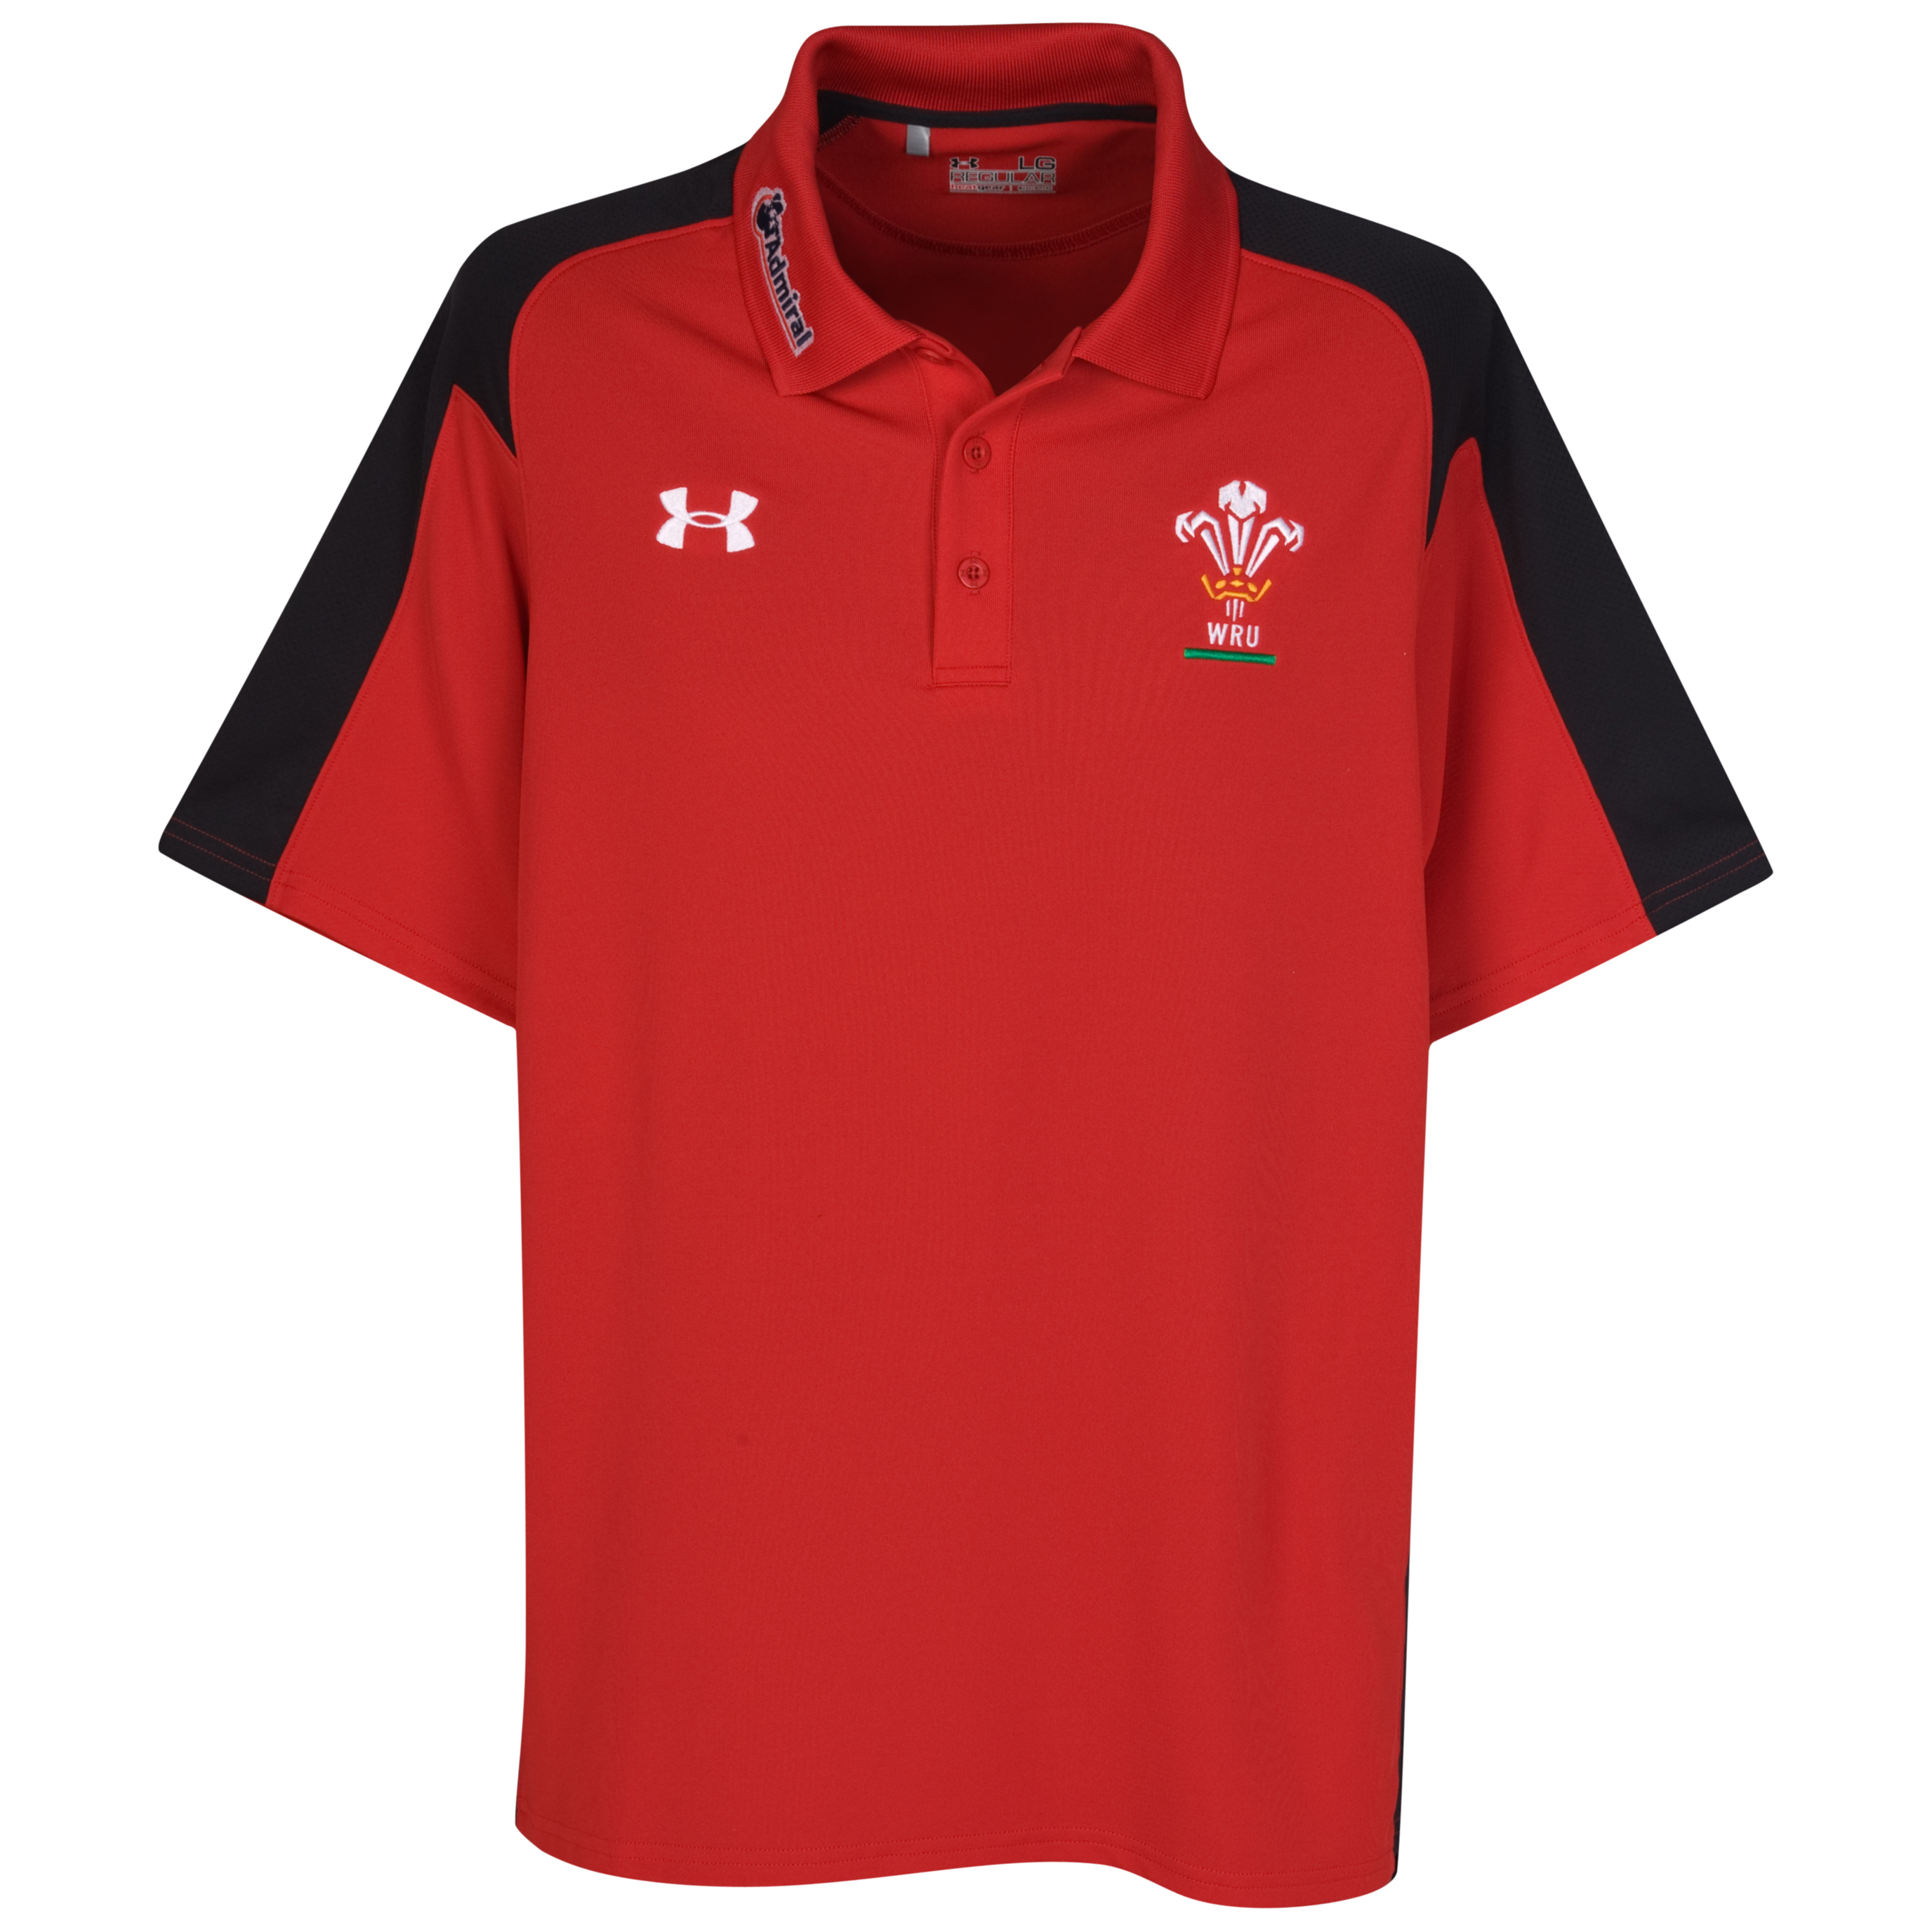 Wales Rugby Union Calcutta Polo - Red/Black. for 15€